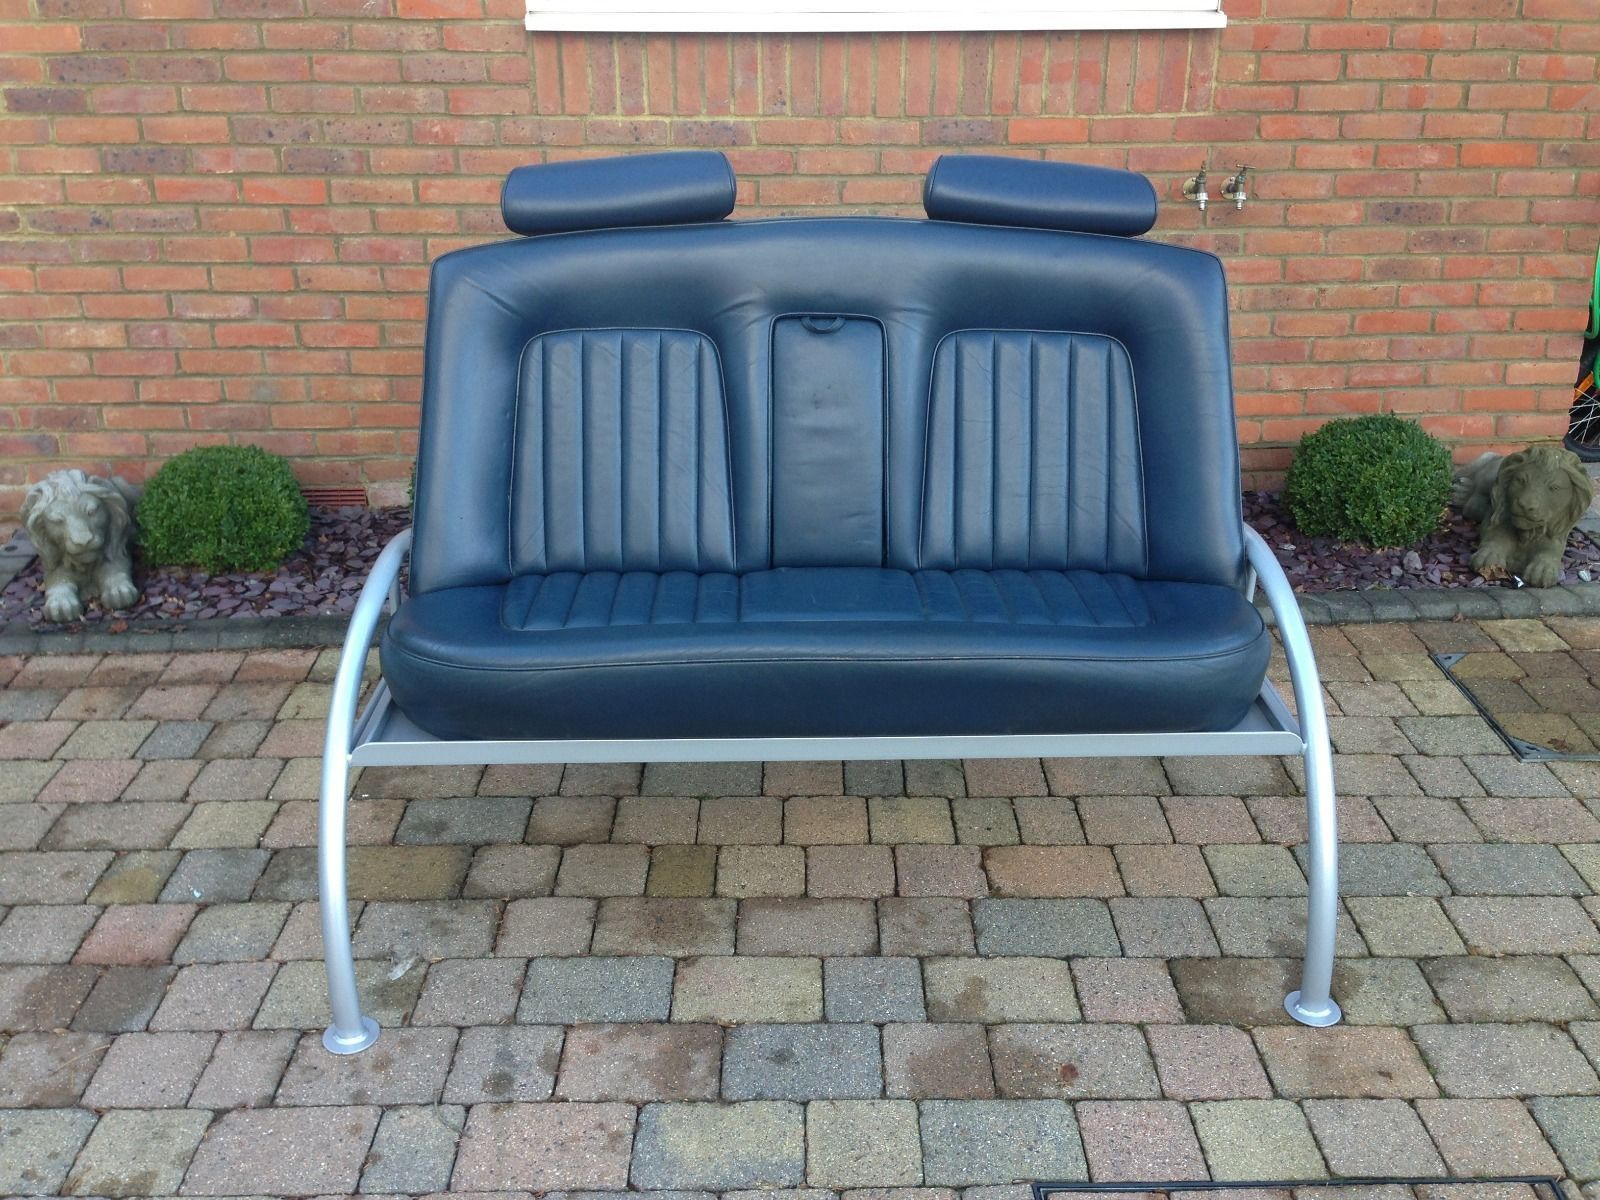 Auto Couch Top Gear Sofa Seat Chair Classic Car Showroom Or Mancave Rolls